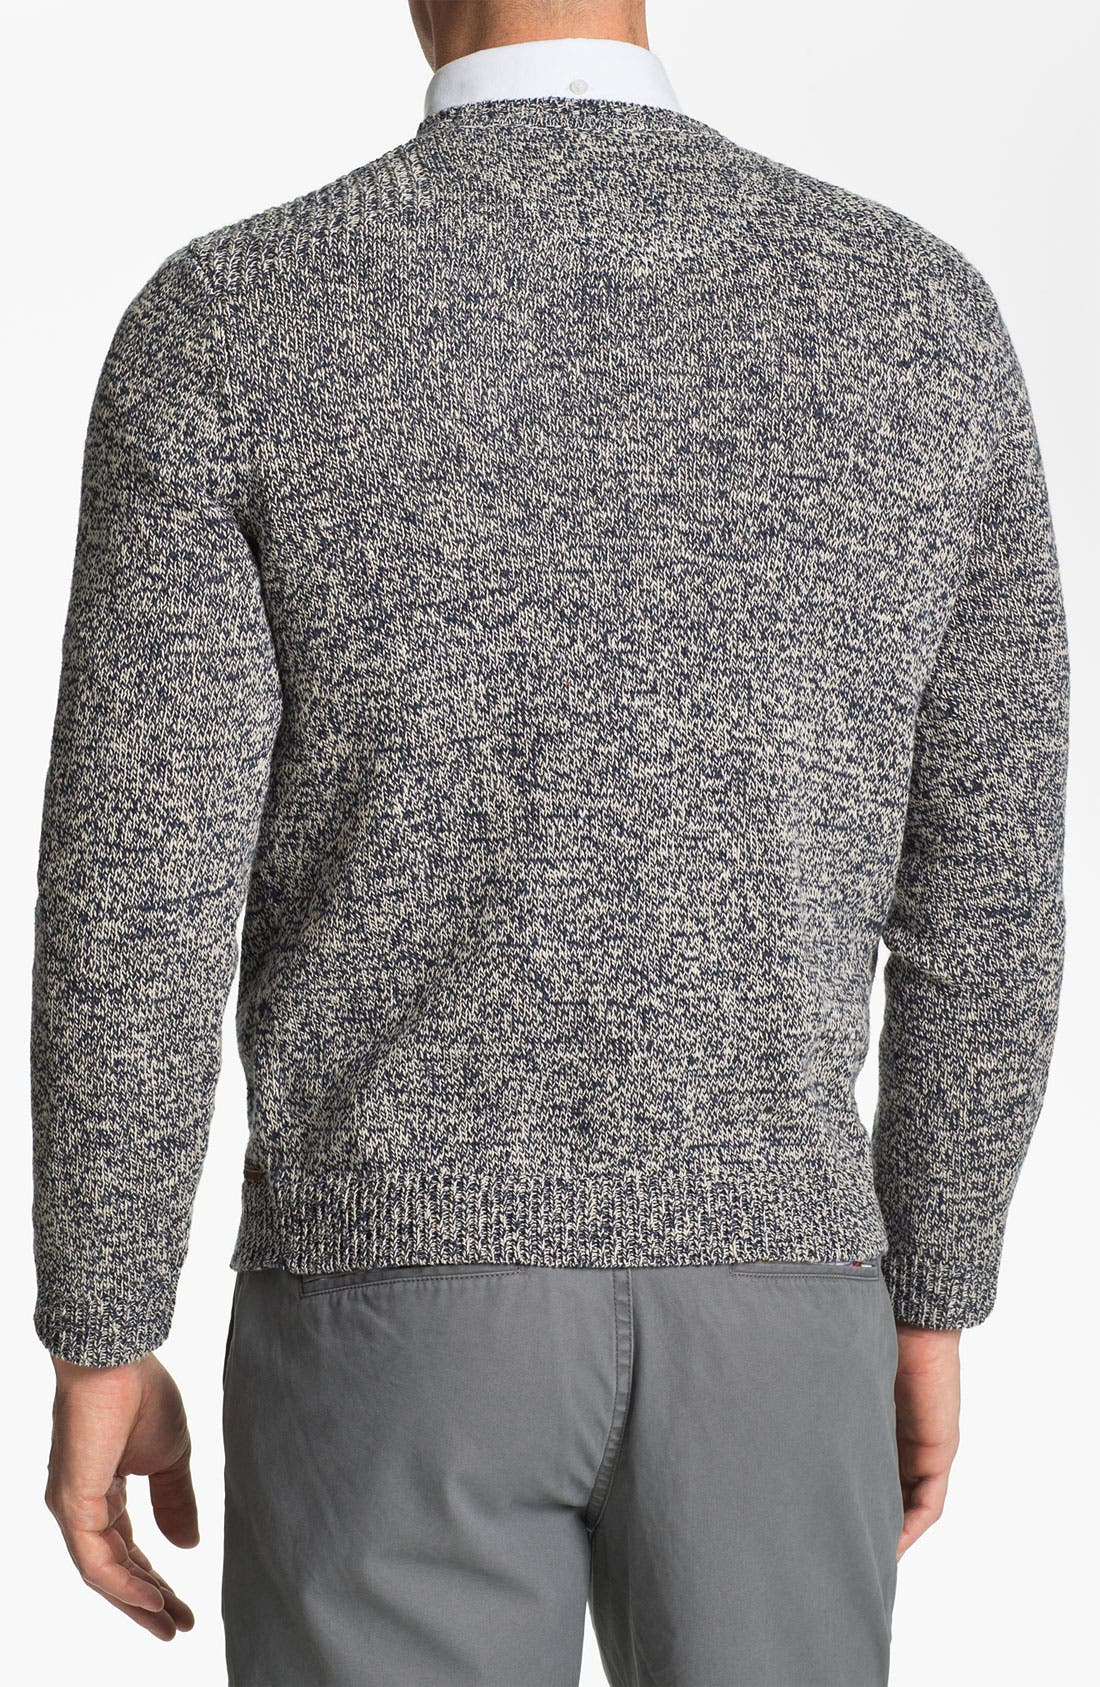 Alternate Image 2  - Ted Baker London 'Keyston' Cotton & Linen Crewneck Sweater